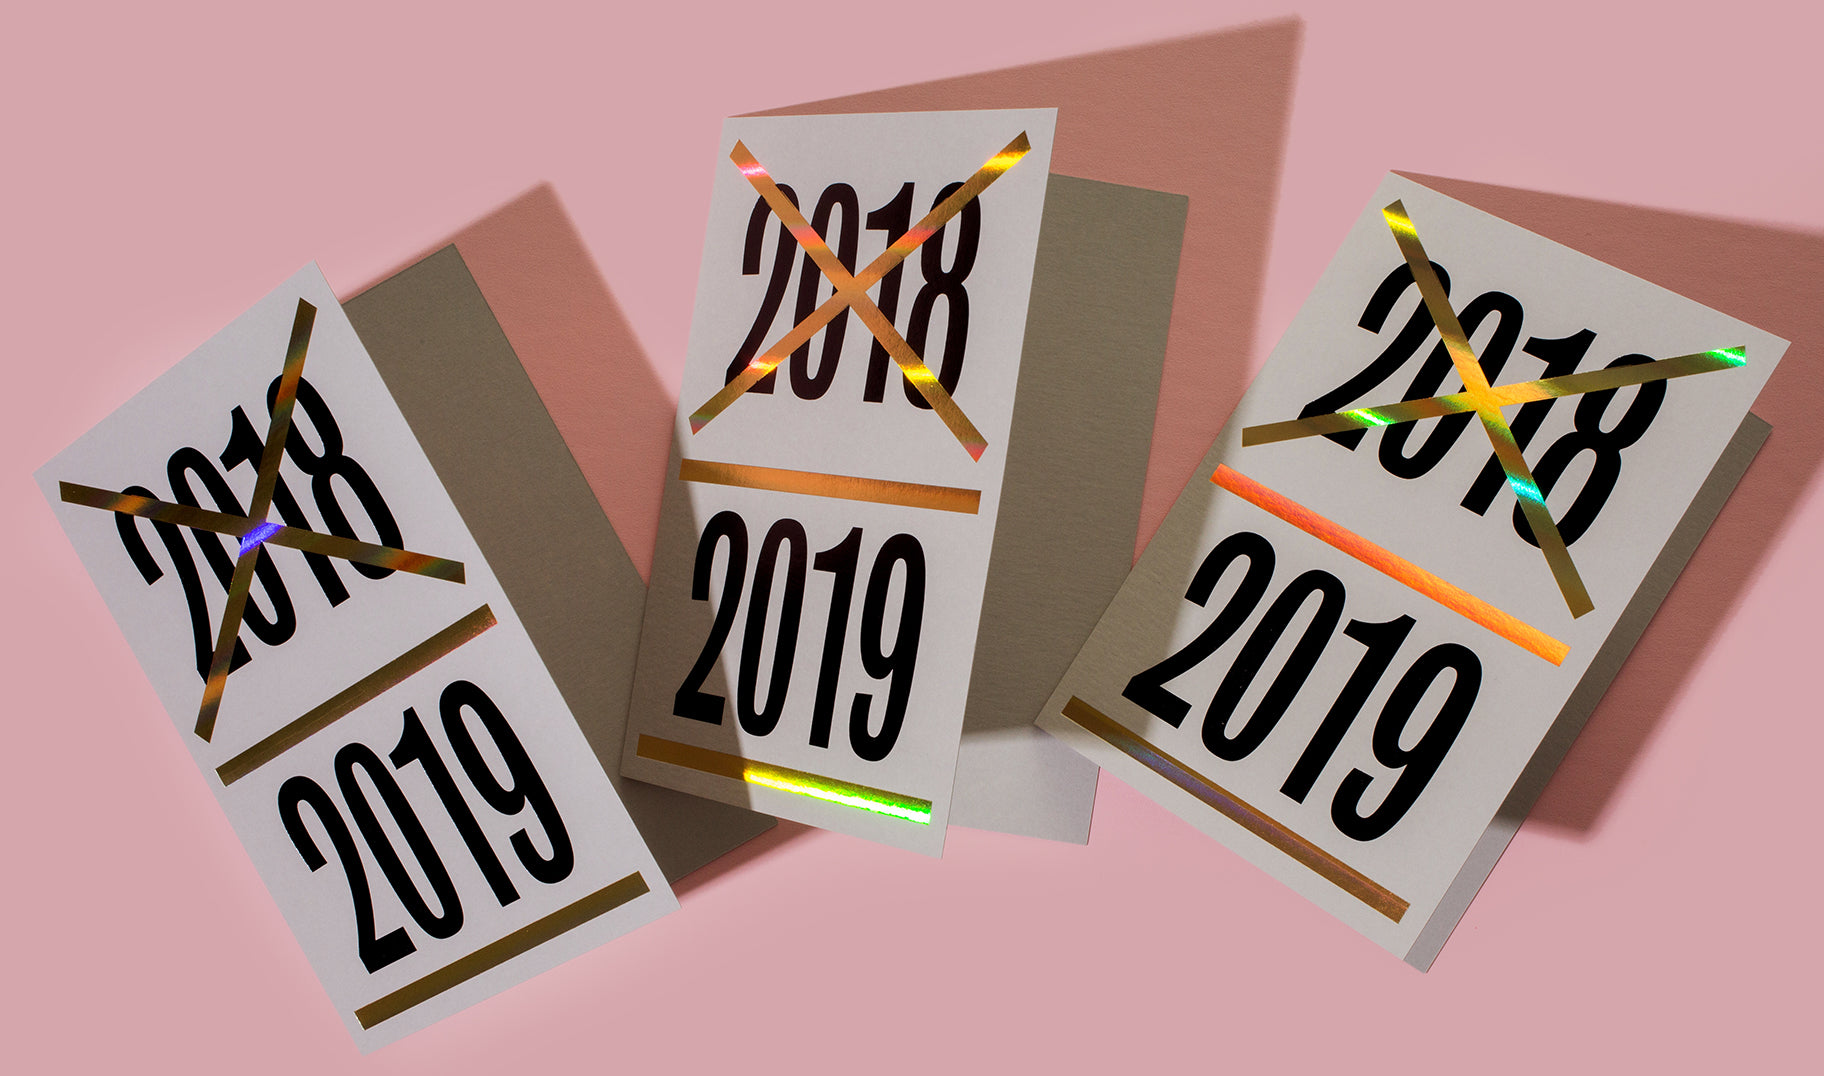 Some say happy new year, some say onto the next! Featuring a combination of matte black and rainbow holographic foil stamps on pale grey Mohawk paper, these cards will bring a warm welcome to 2019.